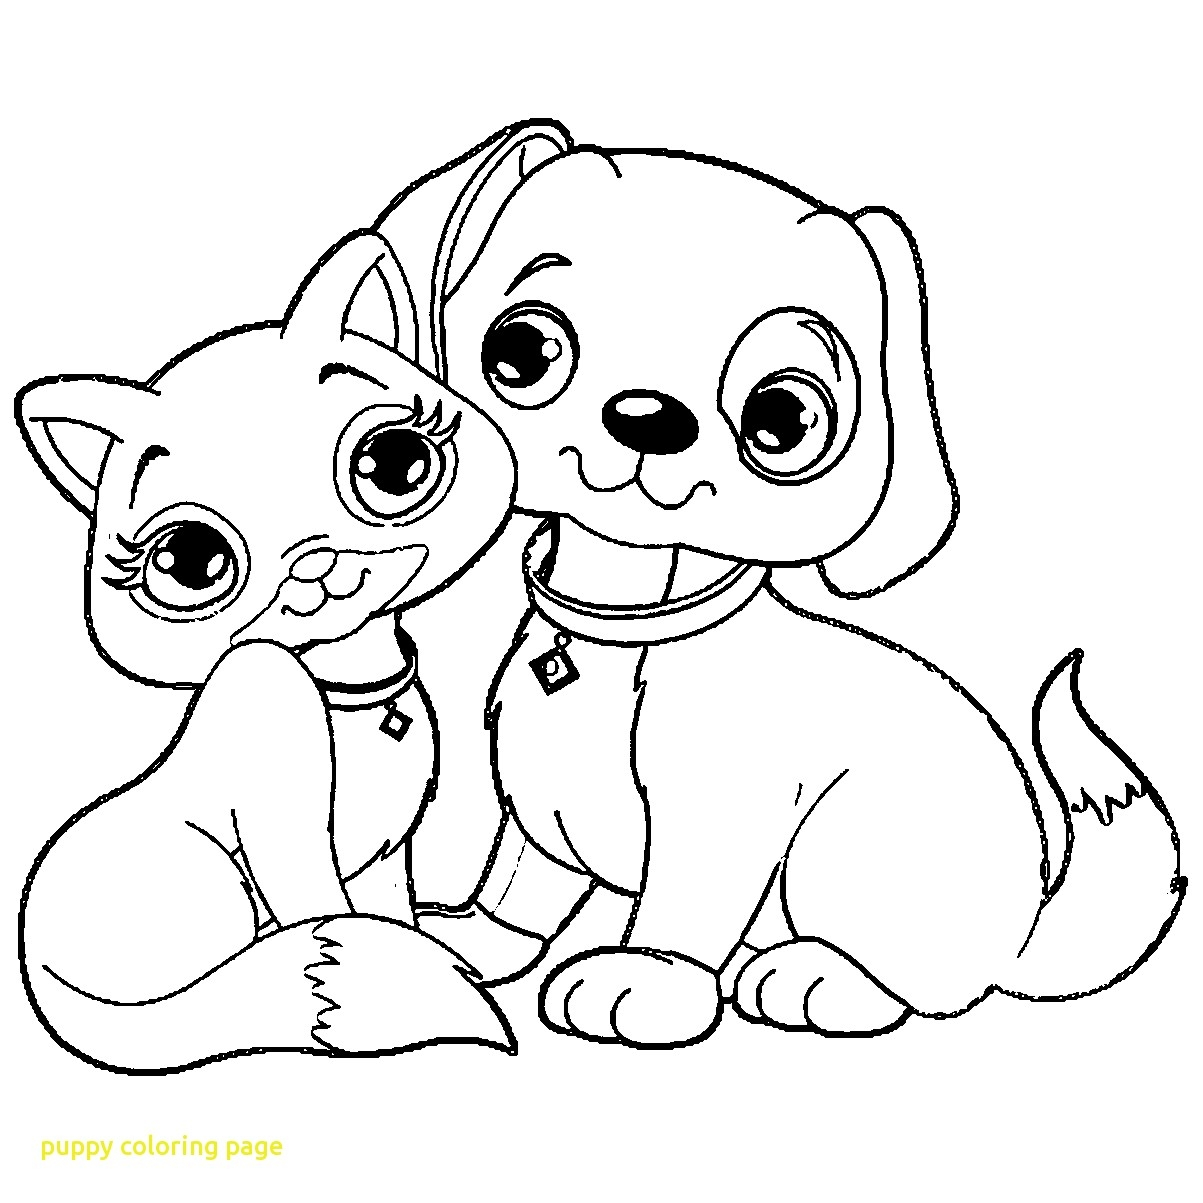 Cool Coloring Pages Of Dogs At Getdrawings